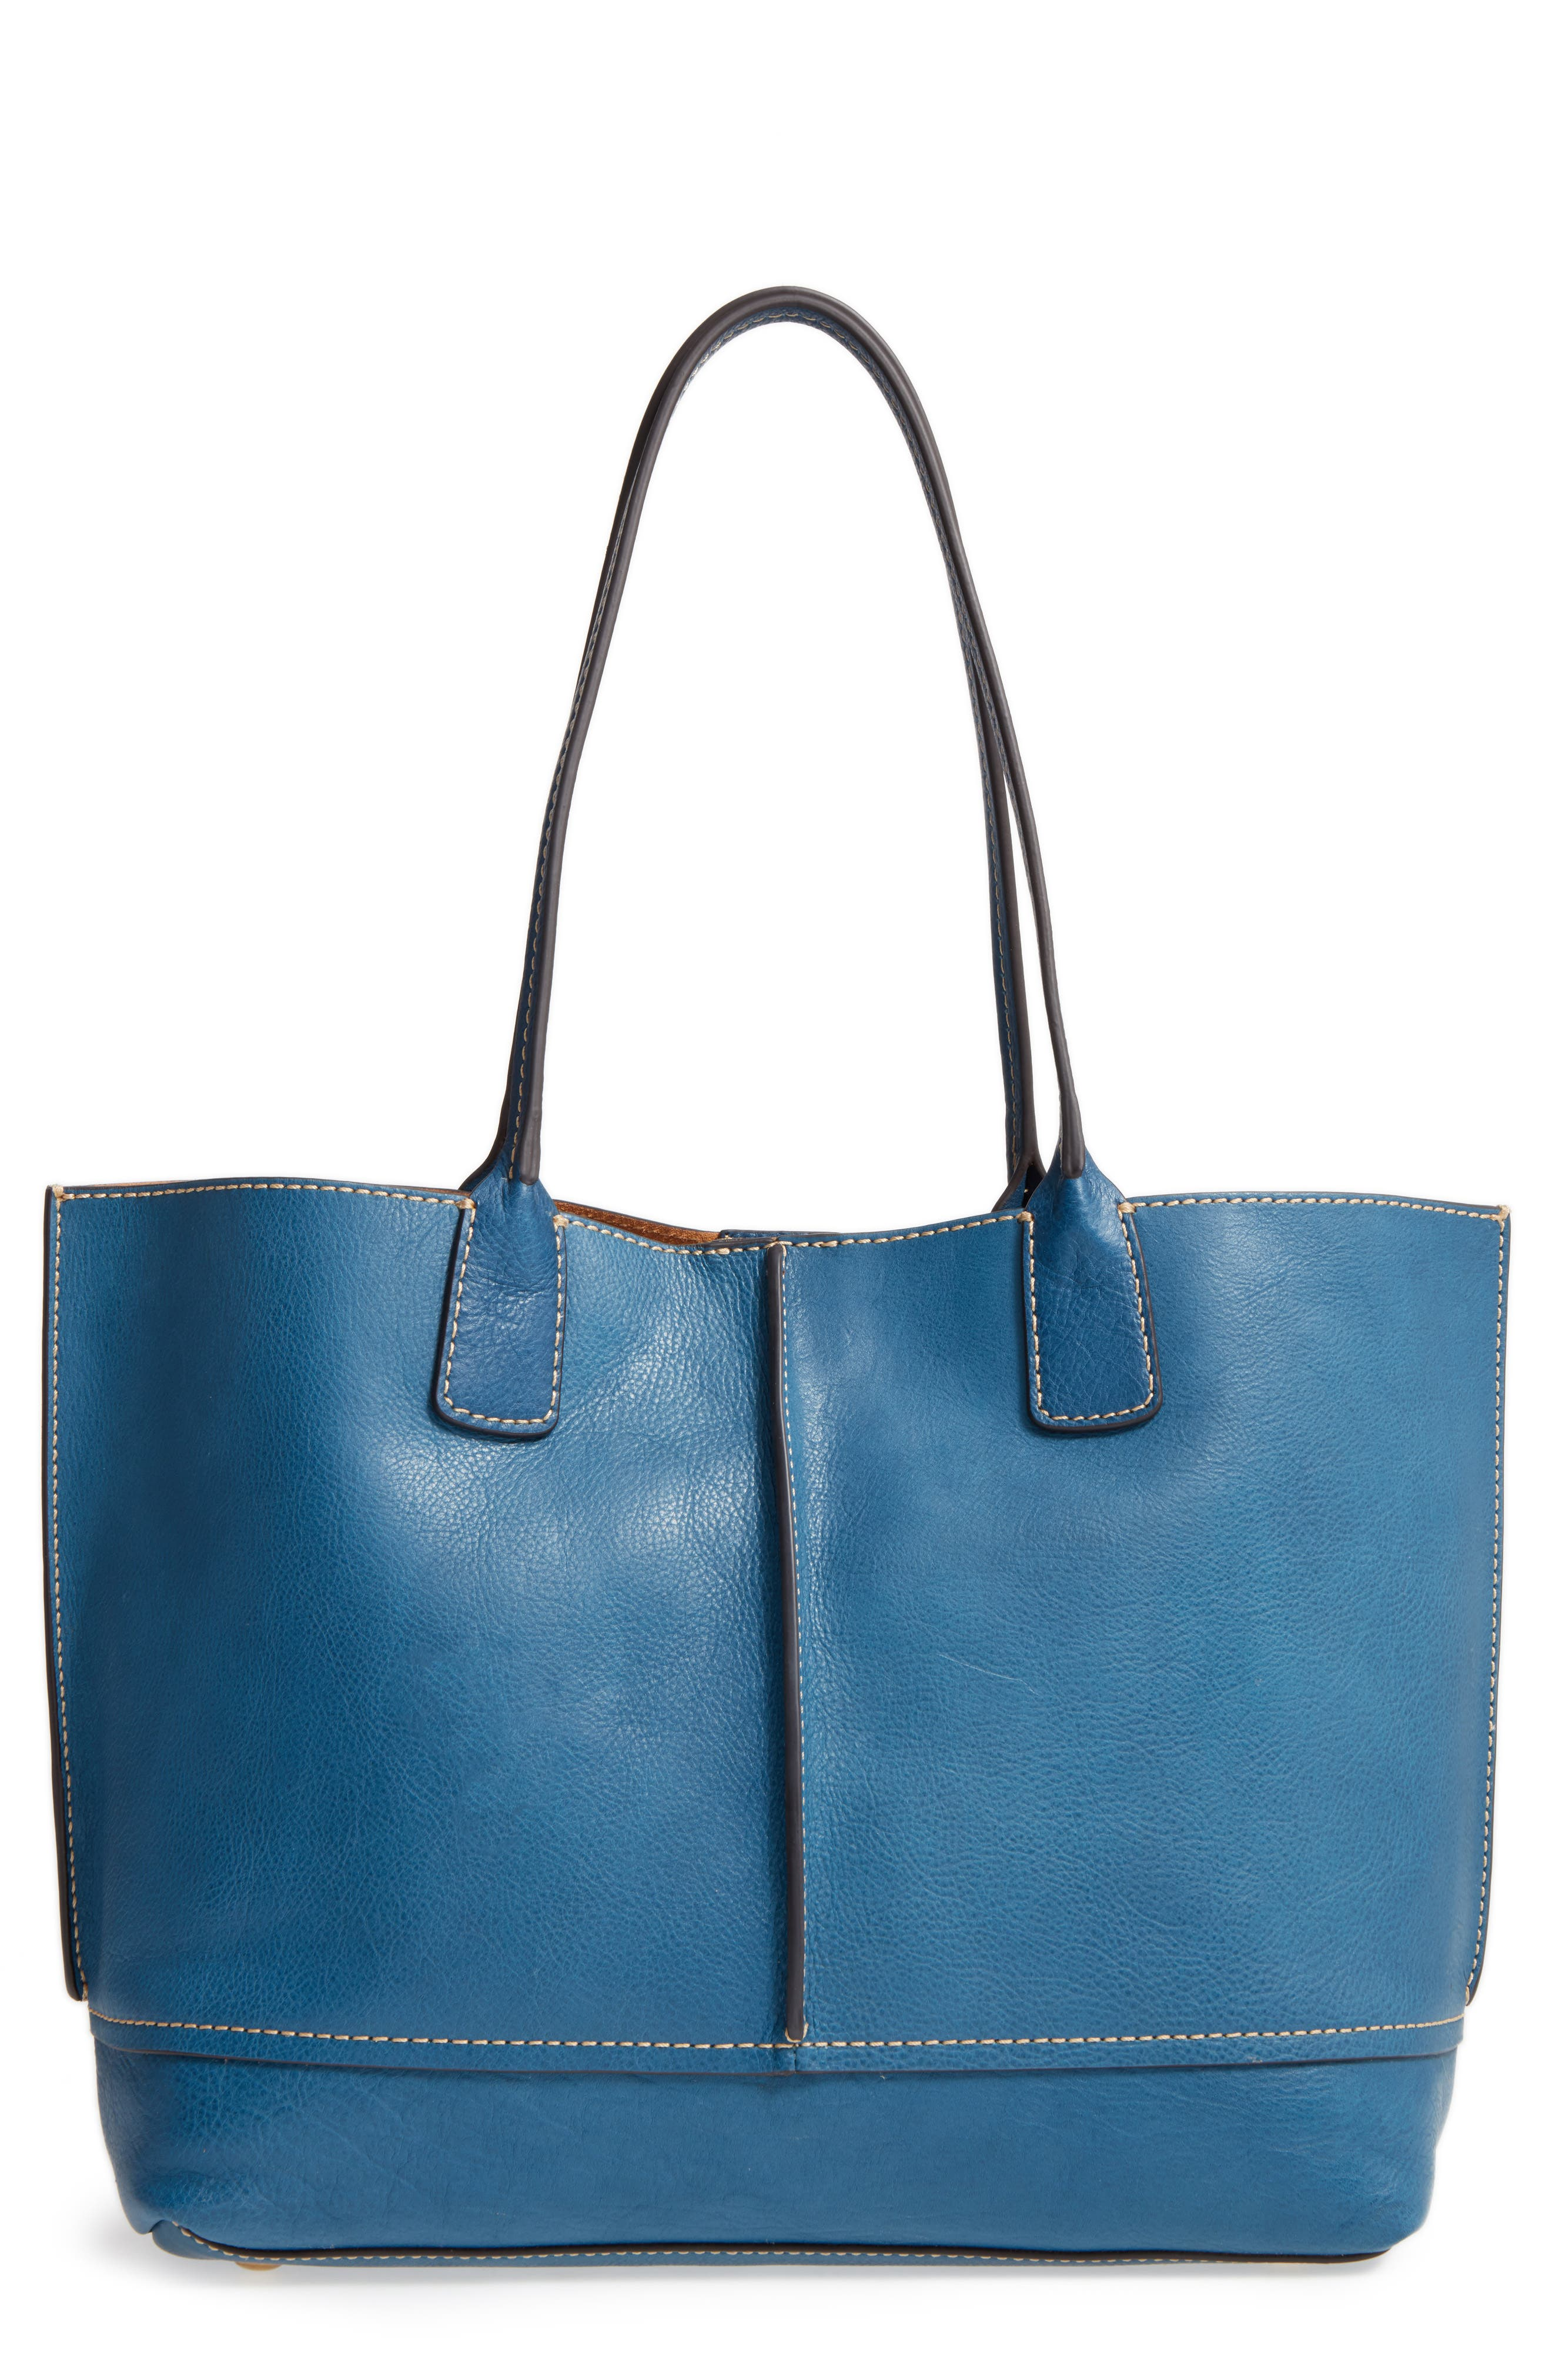 Alternate Image 1 Selected - Frye Adeline Leather Tote